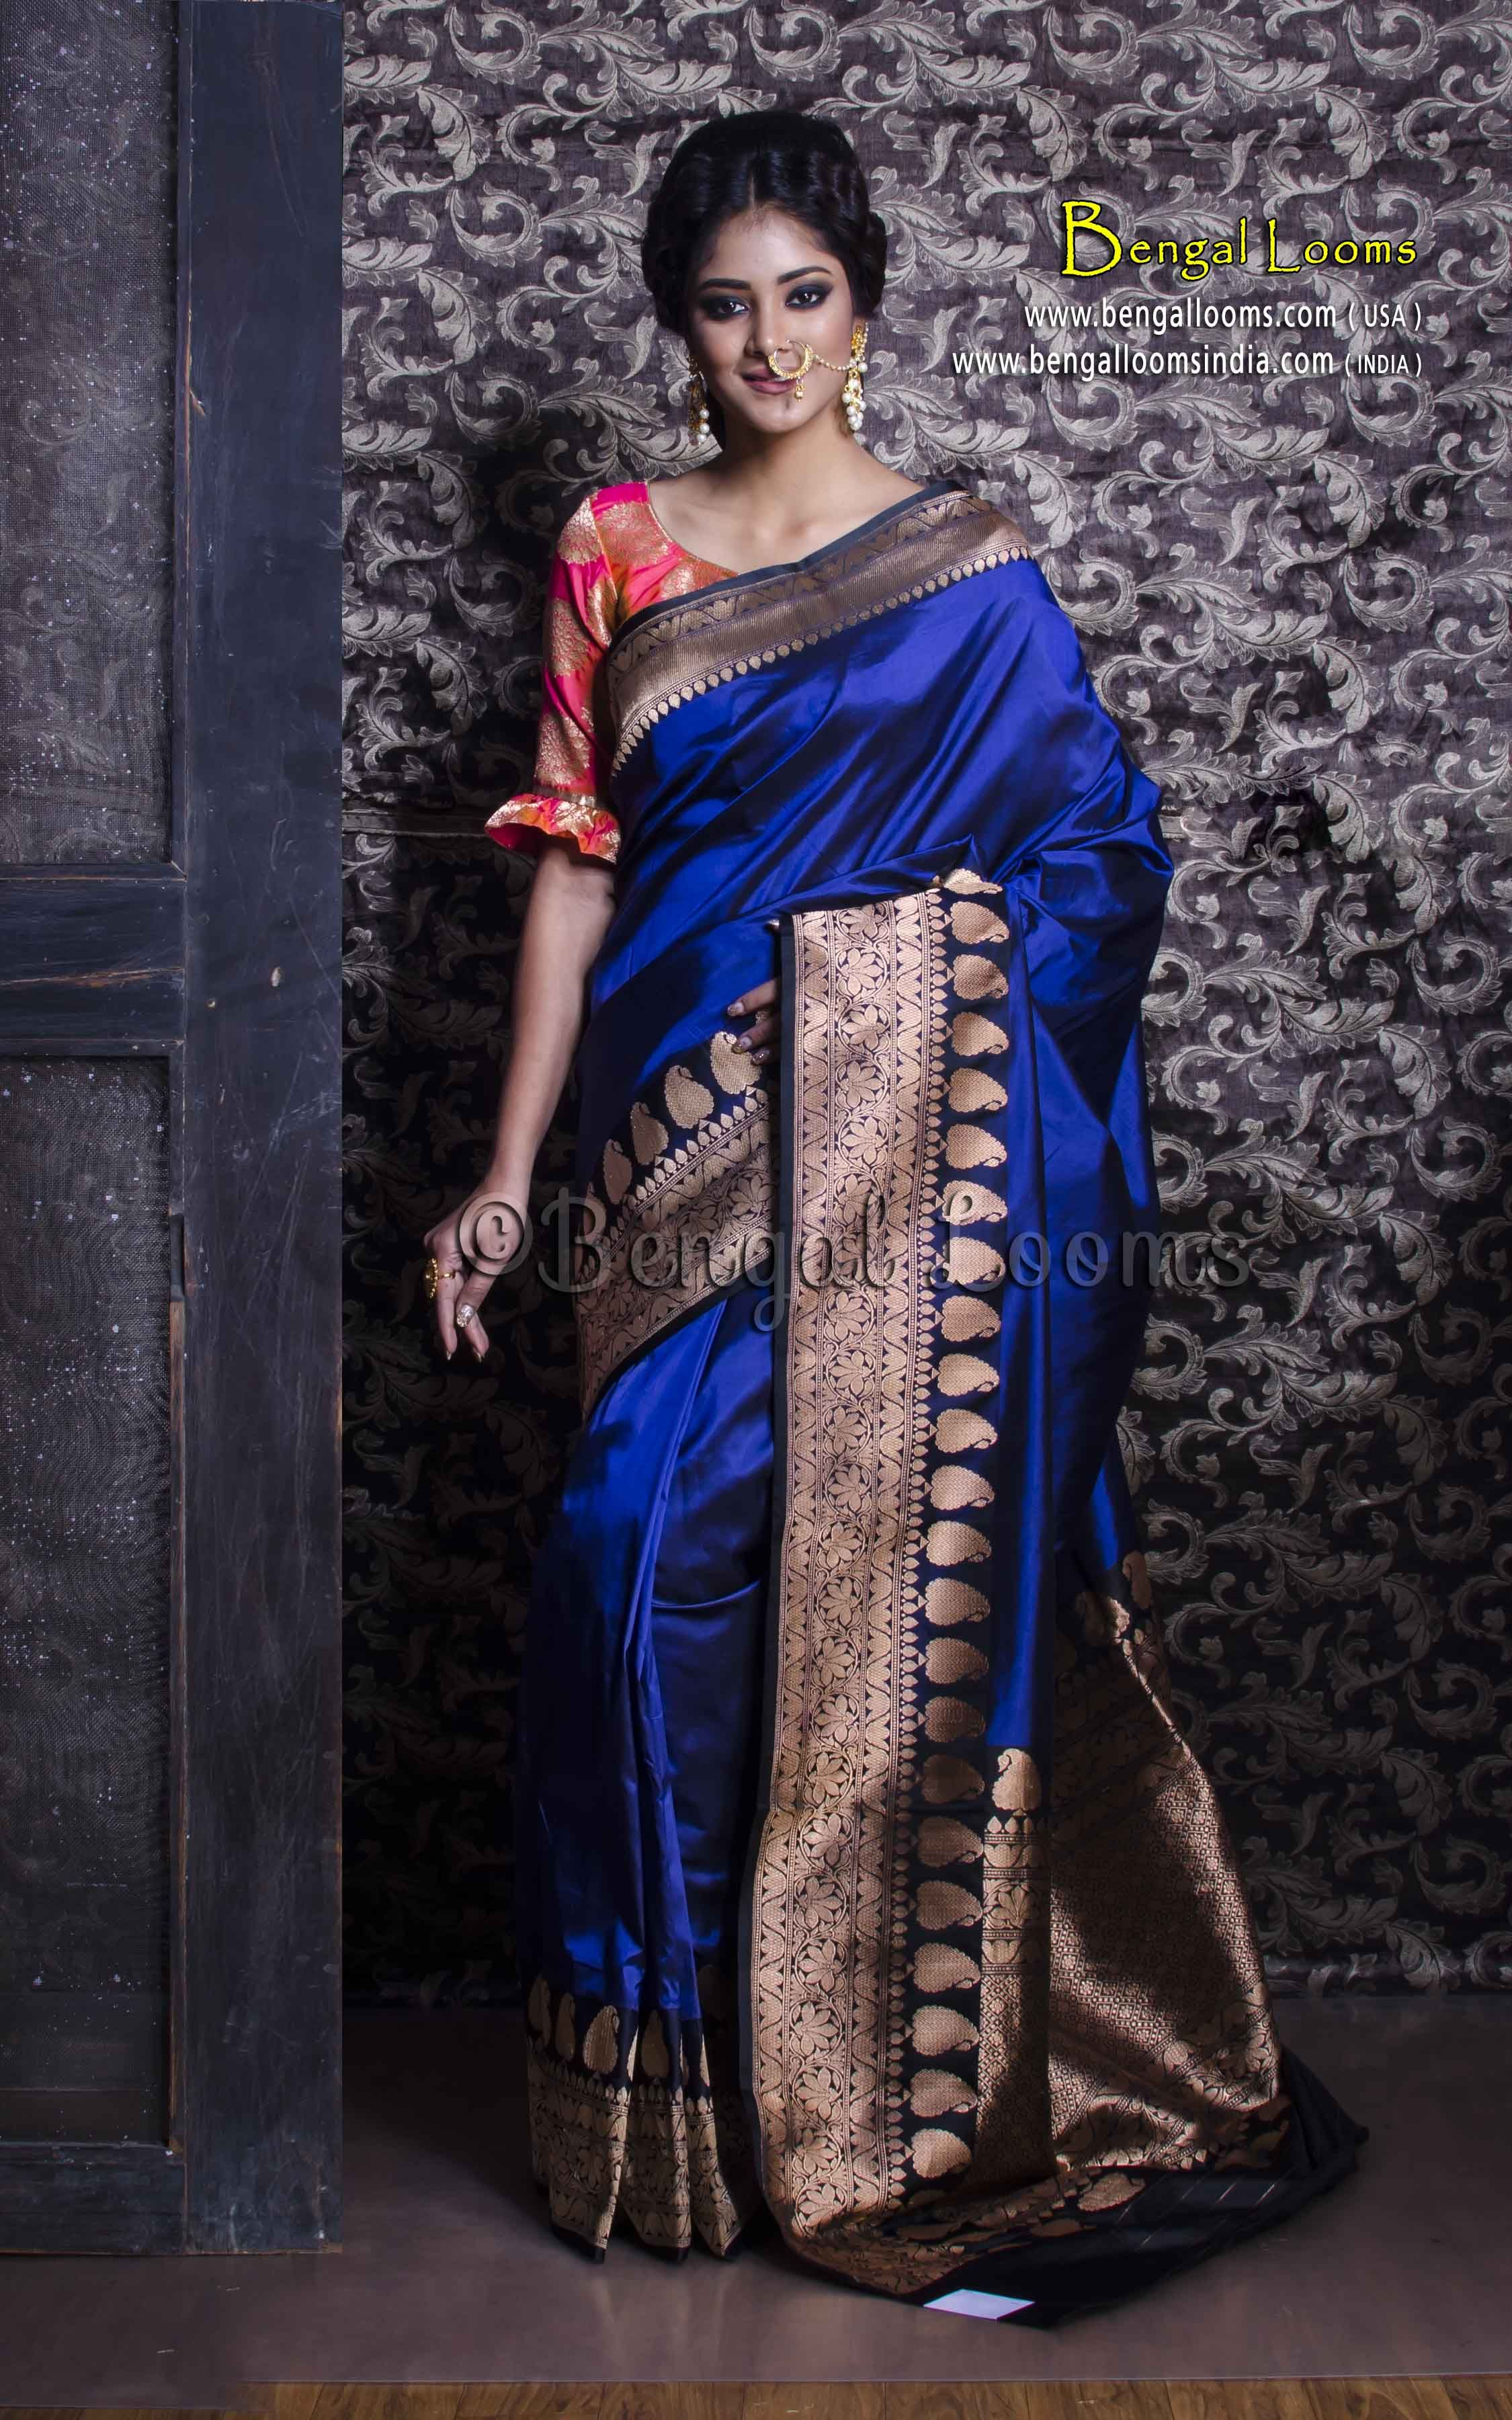 Golden saree blouse design pure handloom katan silk banarasi saree in royal blue and black